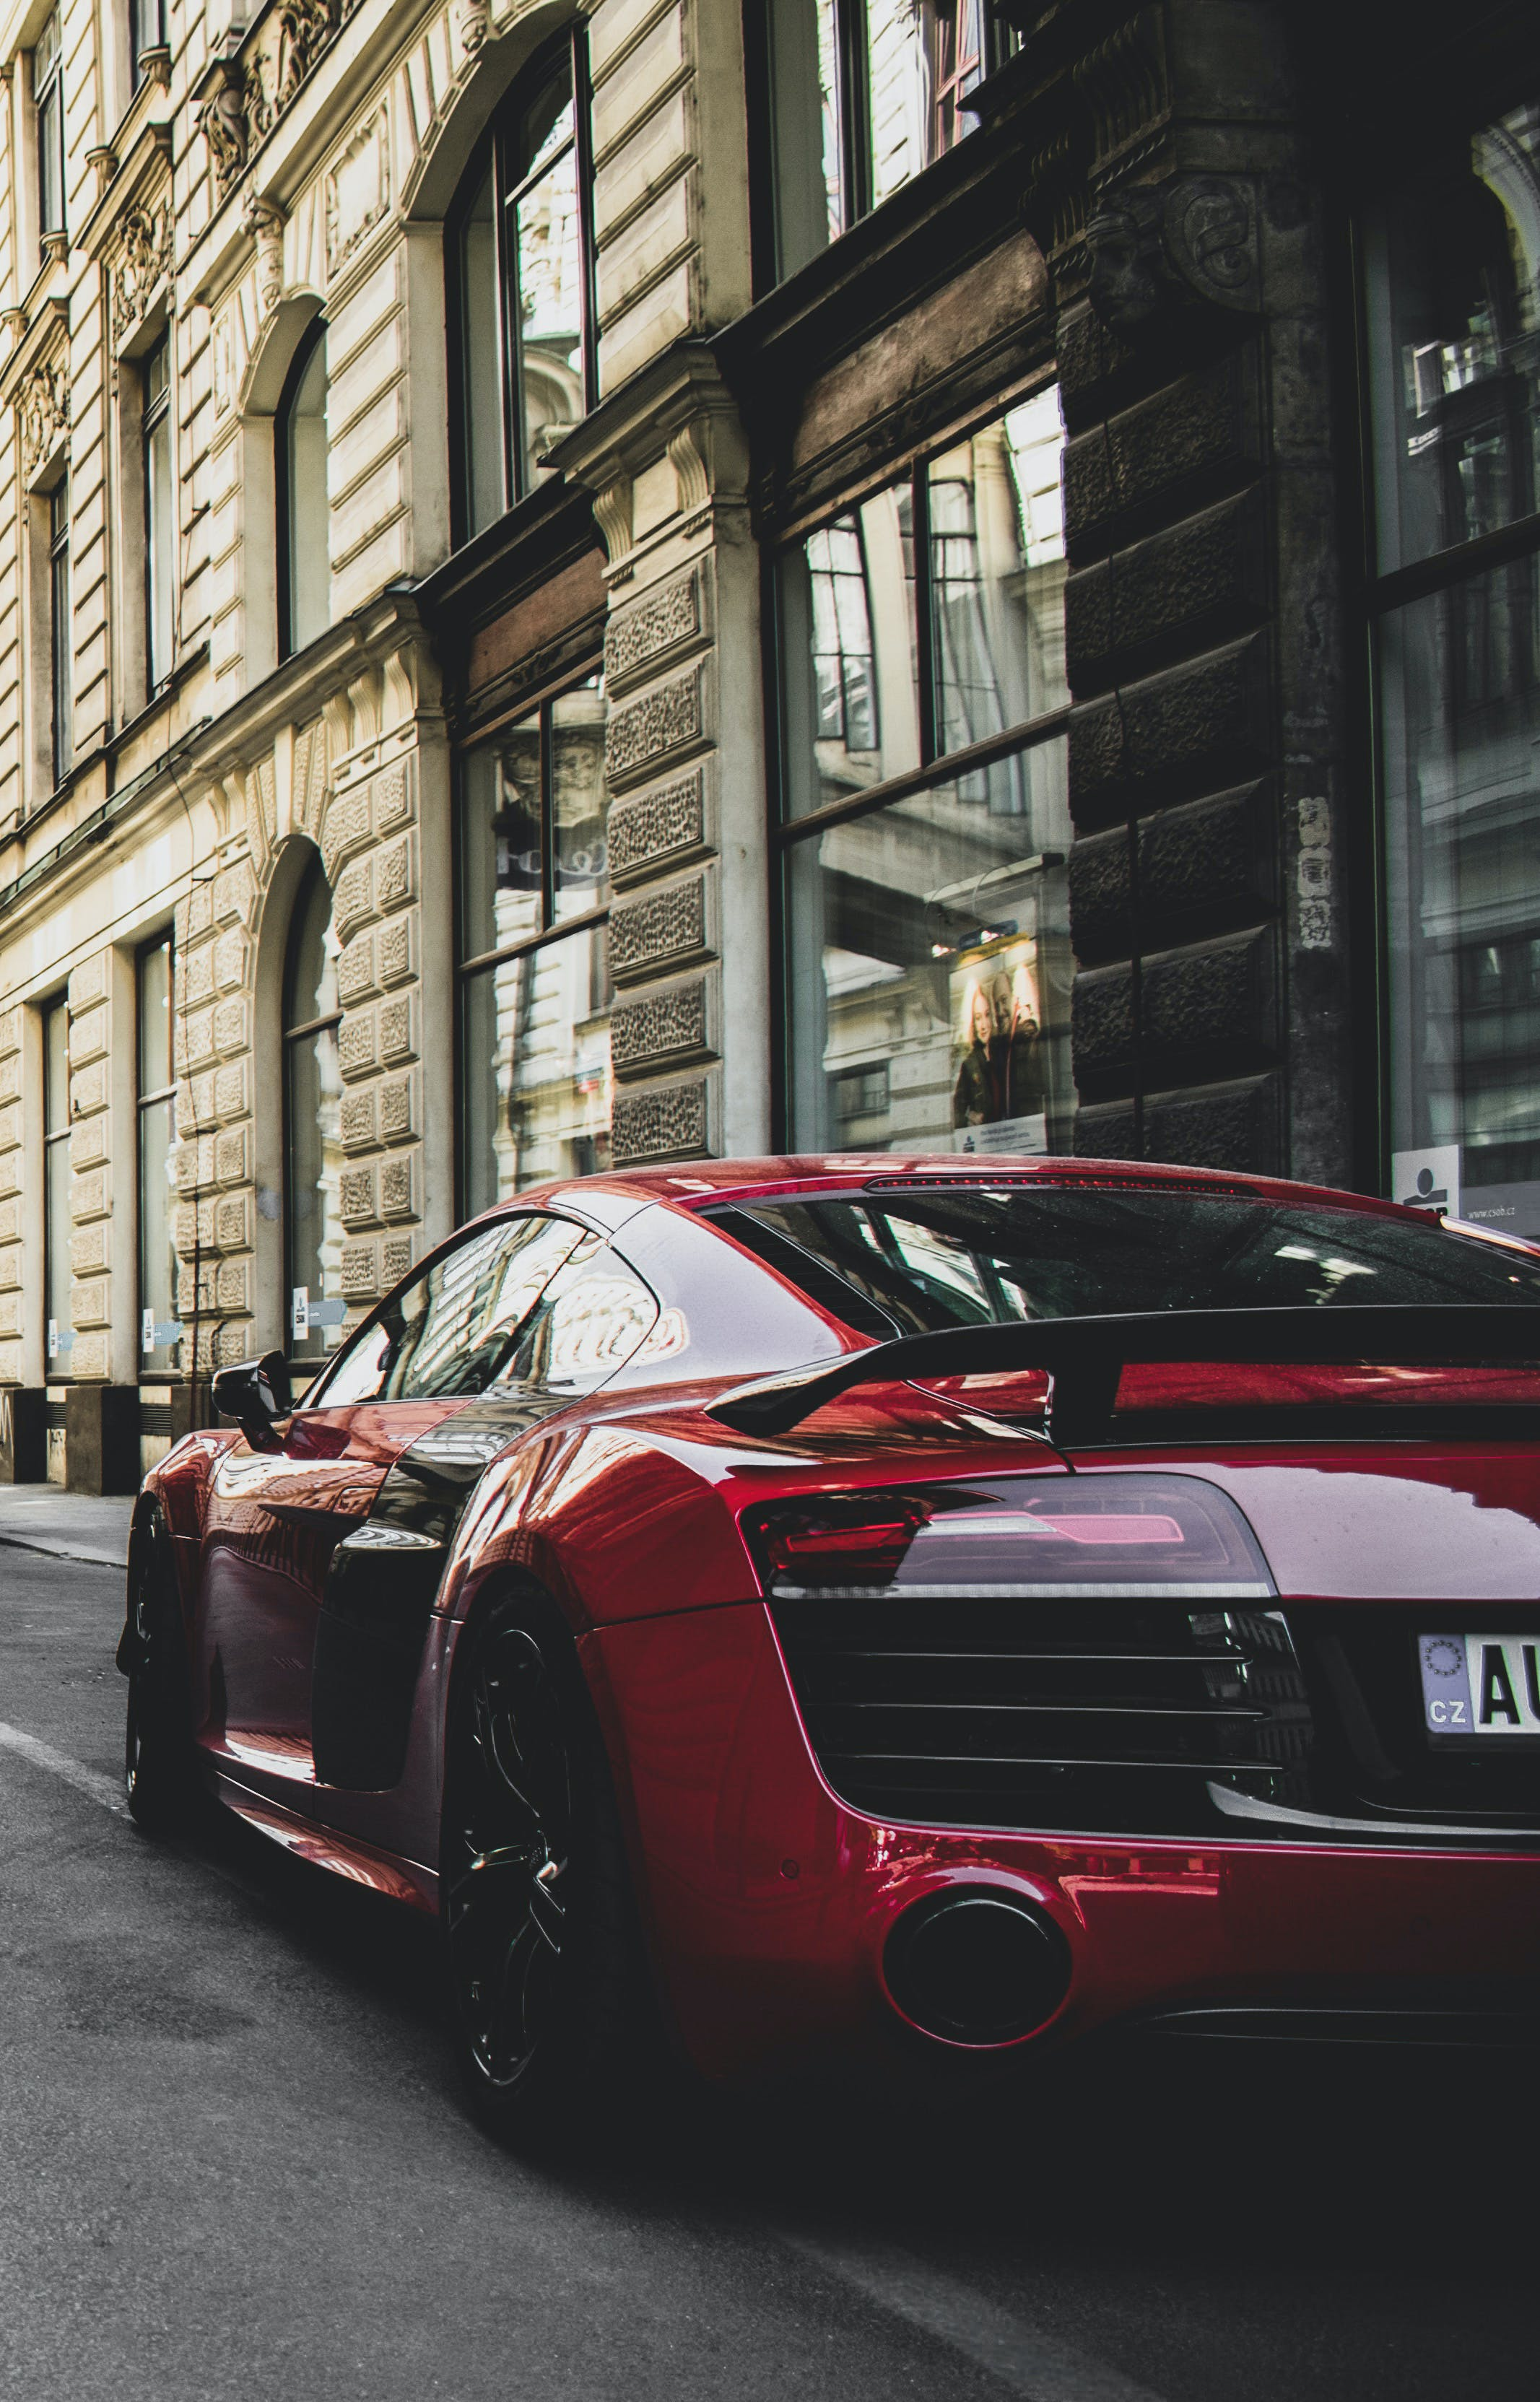 Red and Black Audi R8 Coupe Parked Near Gray Concrete Building